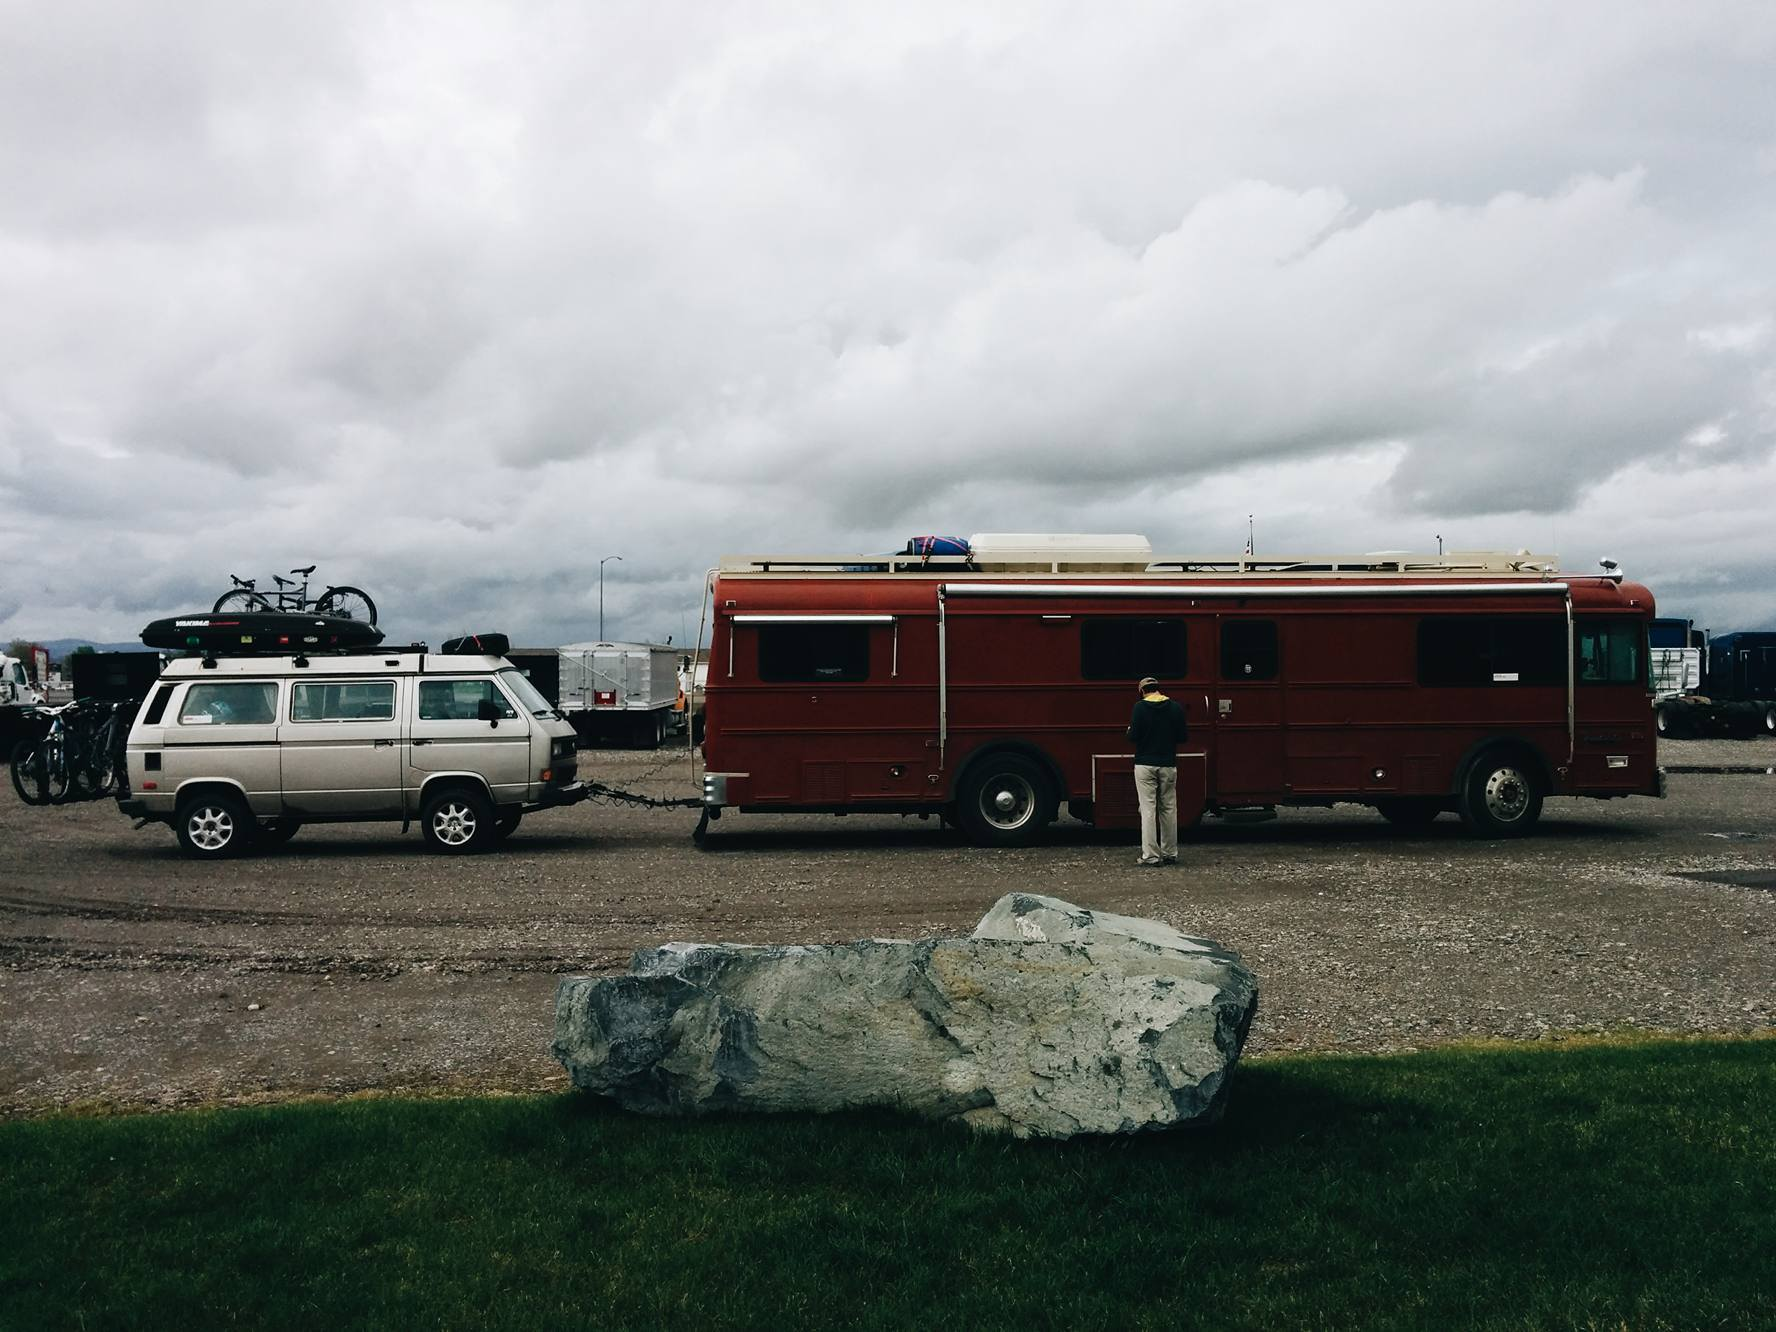 They brought the bus in at noon on Sunday and we were out by 5 pm! We were so happy!! We truly had no idea how long it would take them to fix the problem. Historically speaking, when the bus got in a garage for a problem, it got out 10 days later... So we were brainstorming possible sleeping arrangement. The weather was rainy and cold and as much as we love camping in the Westy, it didn't sound very appealing. However, we were right by the Lewis and Clark Caverns State Park and would have probably stayed  there for a few nights. However, we found out later that the caverns are not open before May 1st, so we'll have to be back!